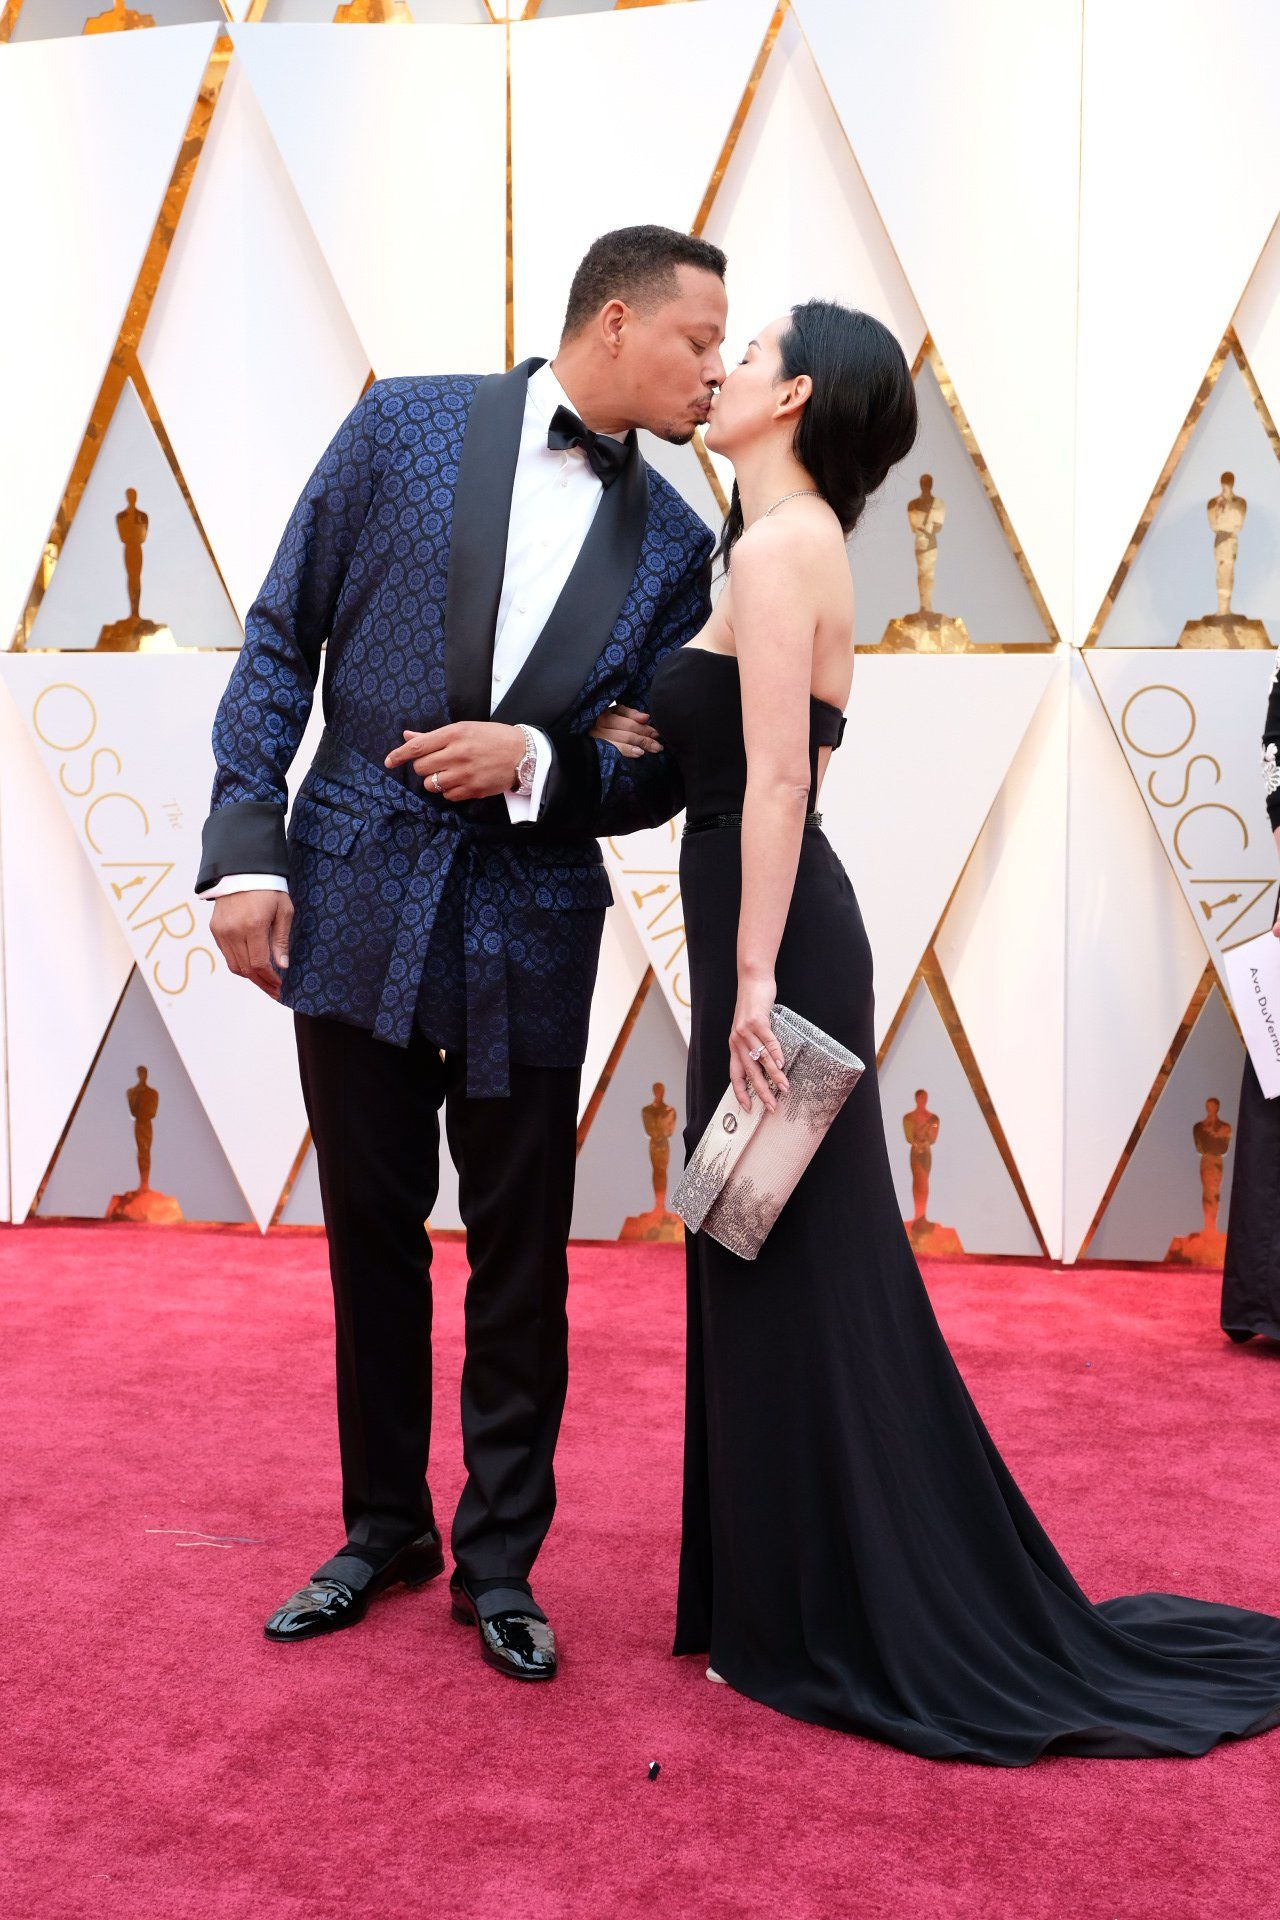 Terrence Howard And Mira Pak Oscar 2017 Red Carpet Arrival Oscars Red Carpet Arrivals 2017 Oscars 2017 Photos 89th Academy Awards Red Carpet Oscars Oscars 2017 Red Carpet Red Carpet Couples